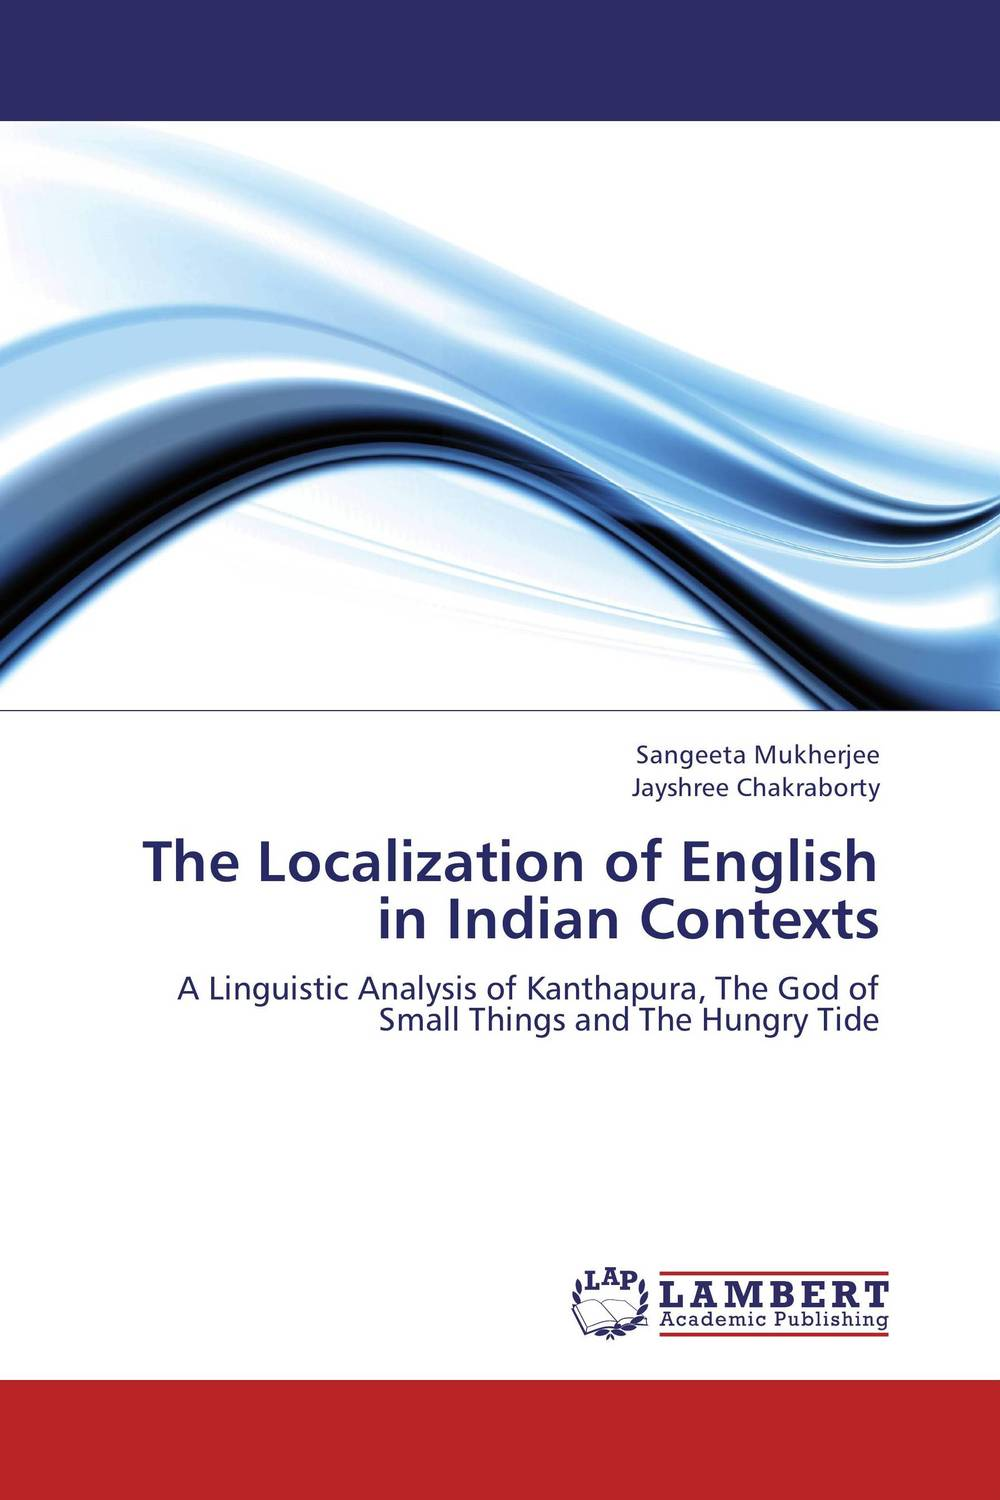 The Localization of English in Indian Contexts thomas winterbottom an accont of the native africans in the sierra leone vol 2